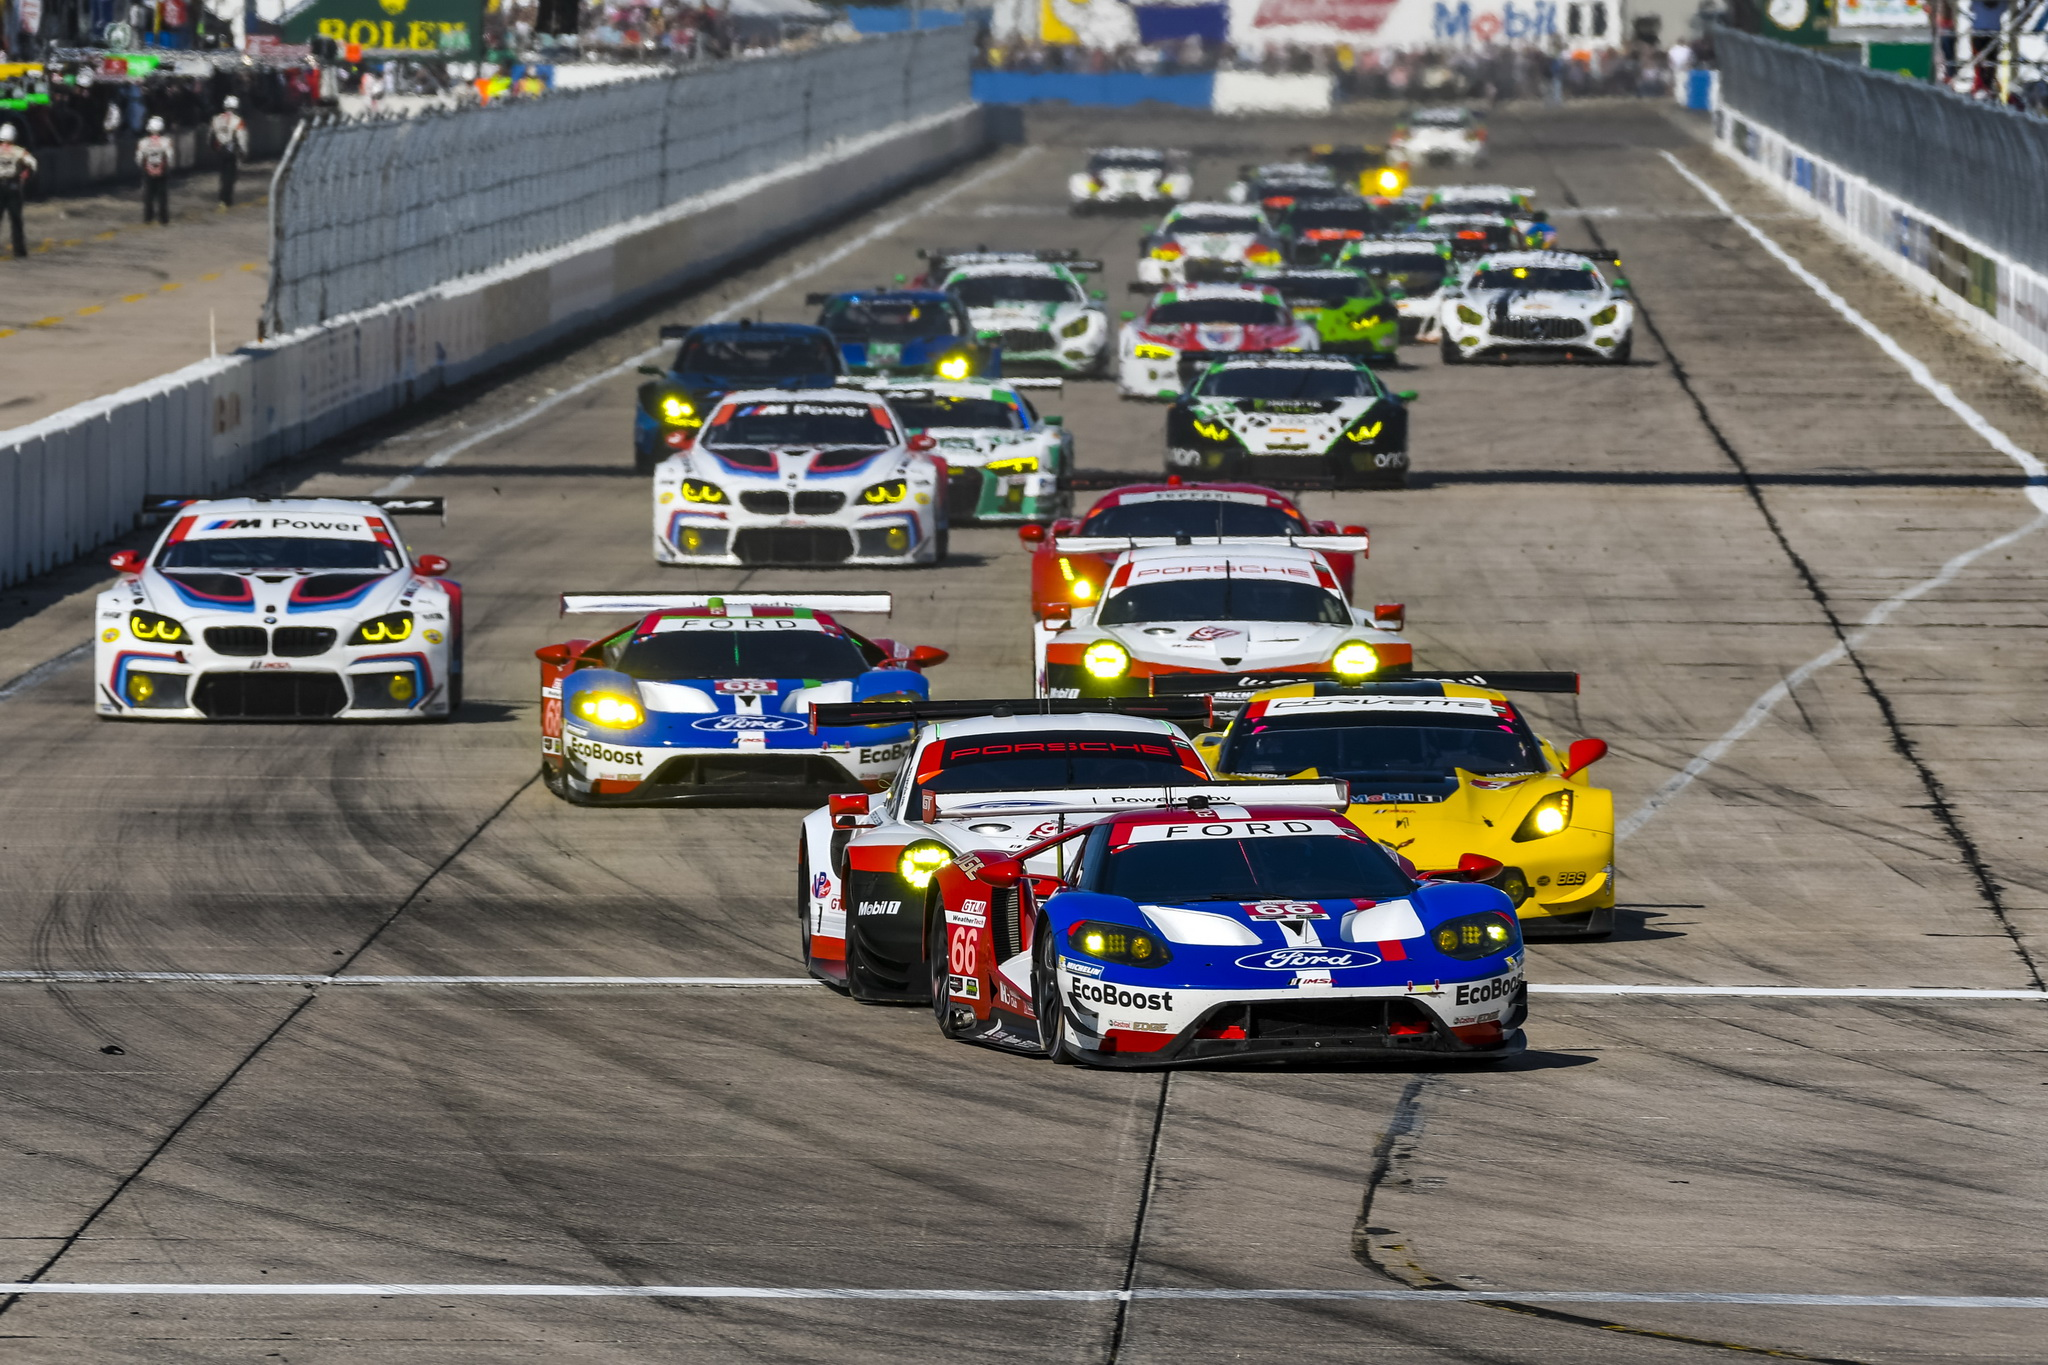 Runner-up result for the No. 66 at the 12 Hours of Sebring